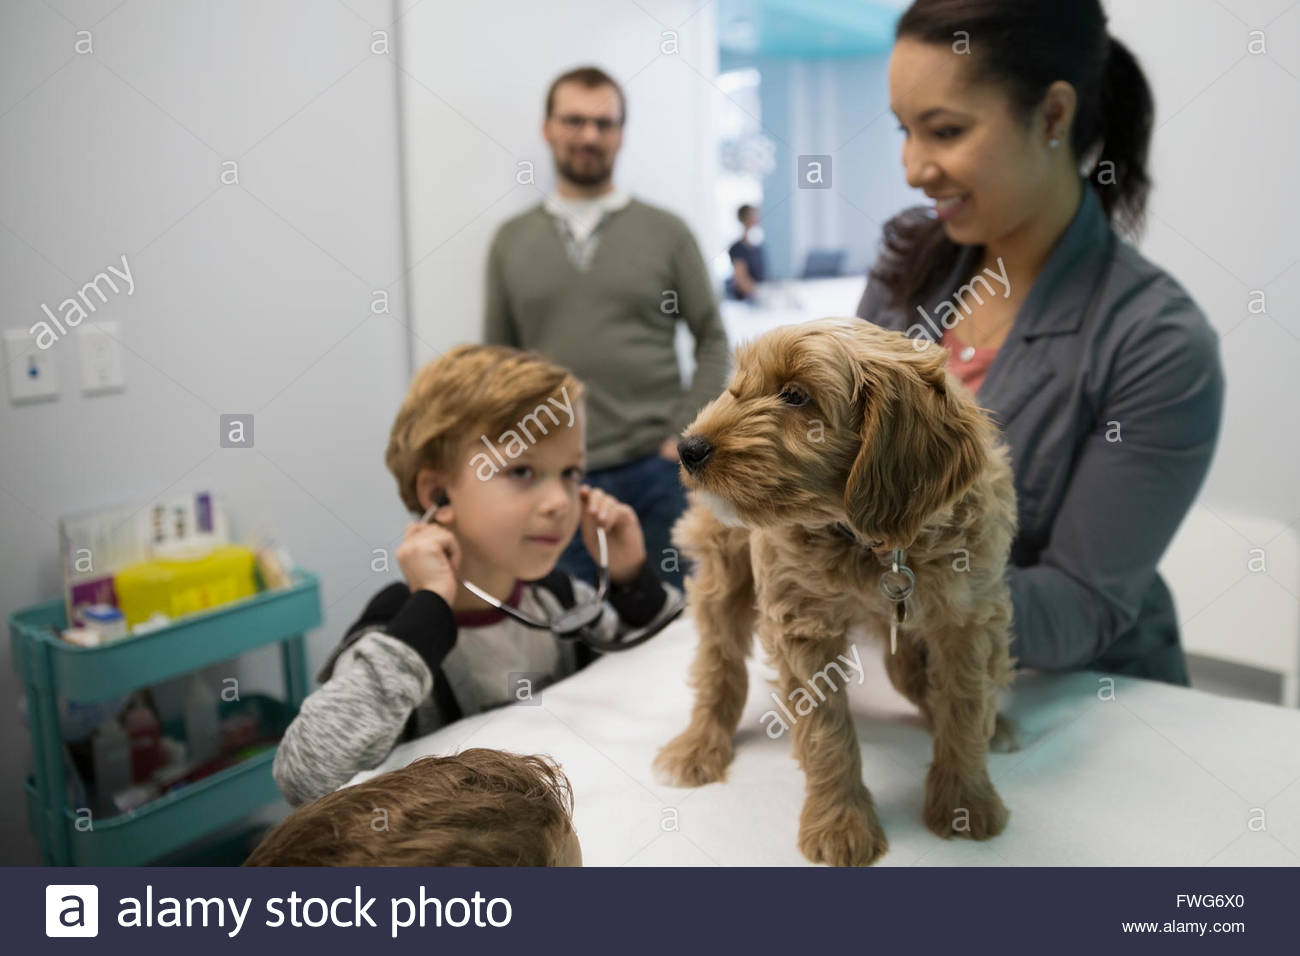 Veterinarian and boy with stethoscope examining dog - Stock Image